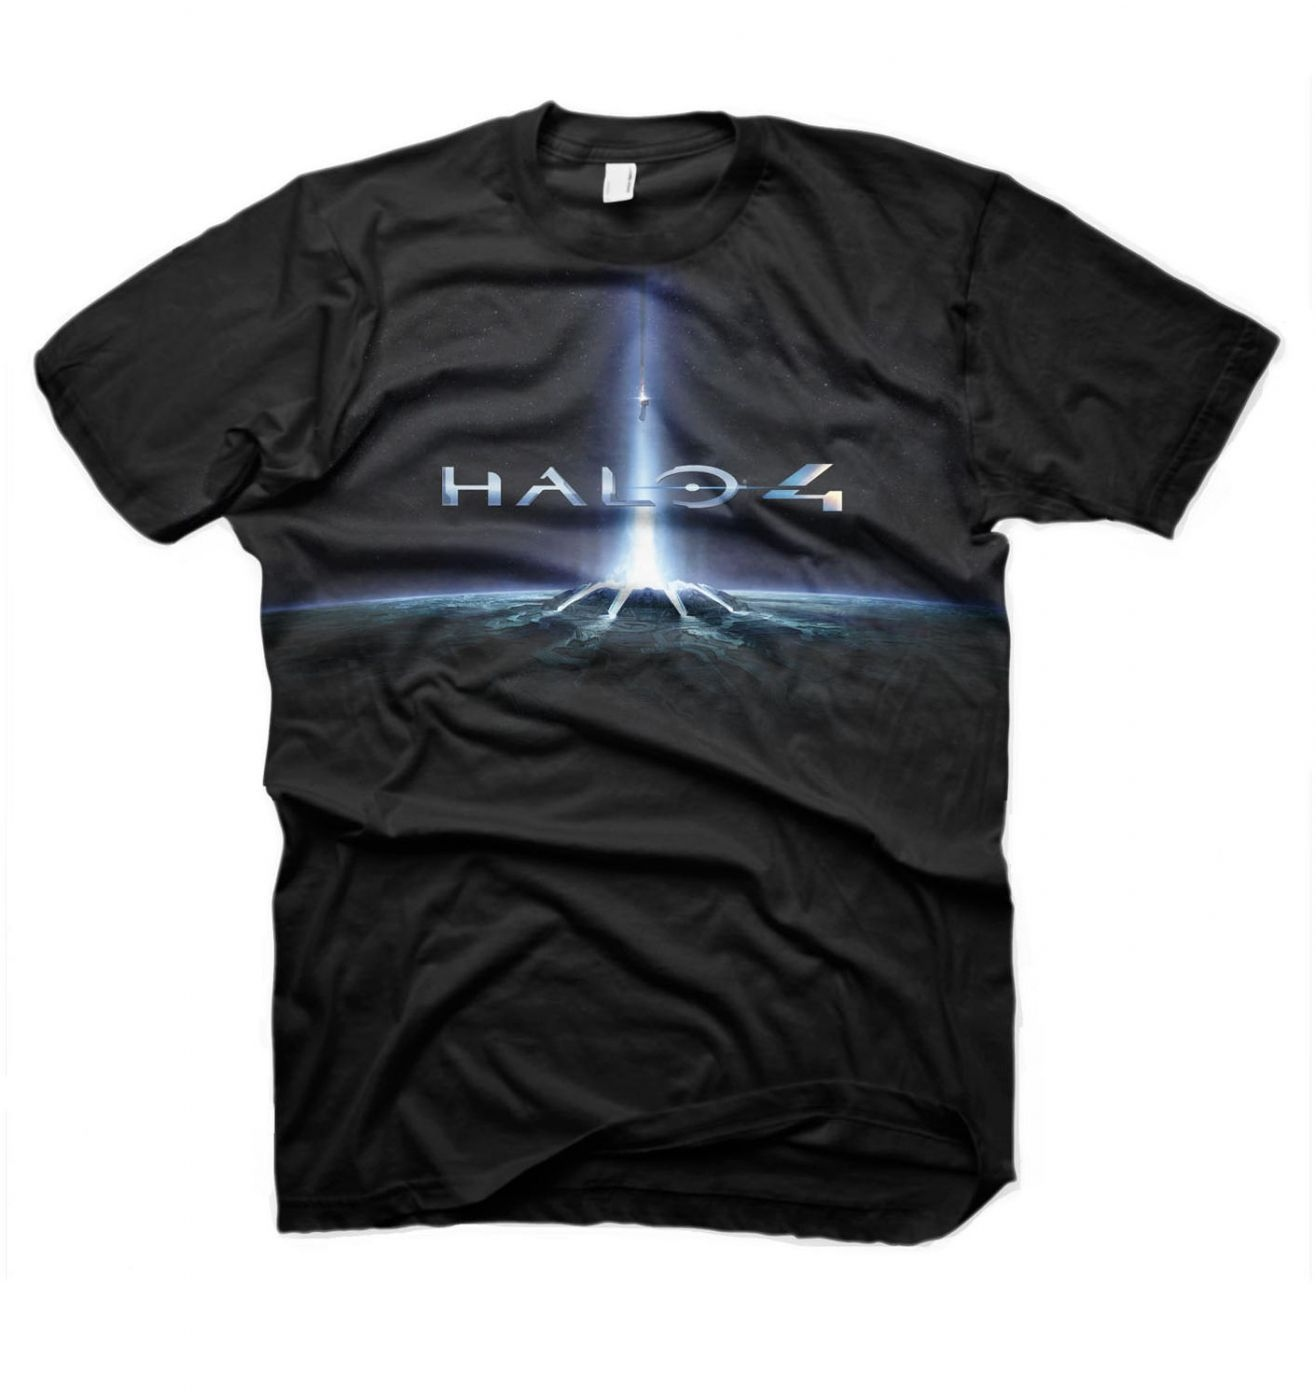 Halo 4 In The Stars t-shirt - OFFICIAL